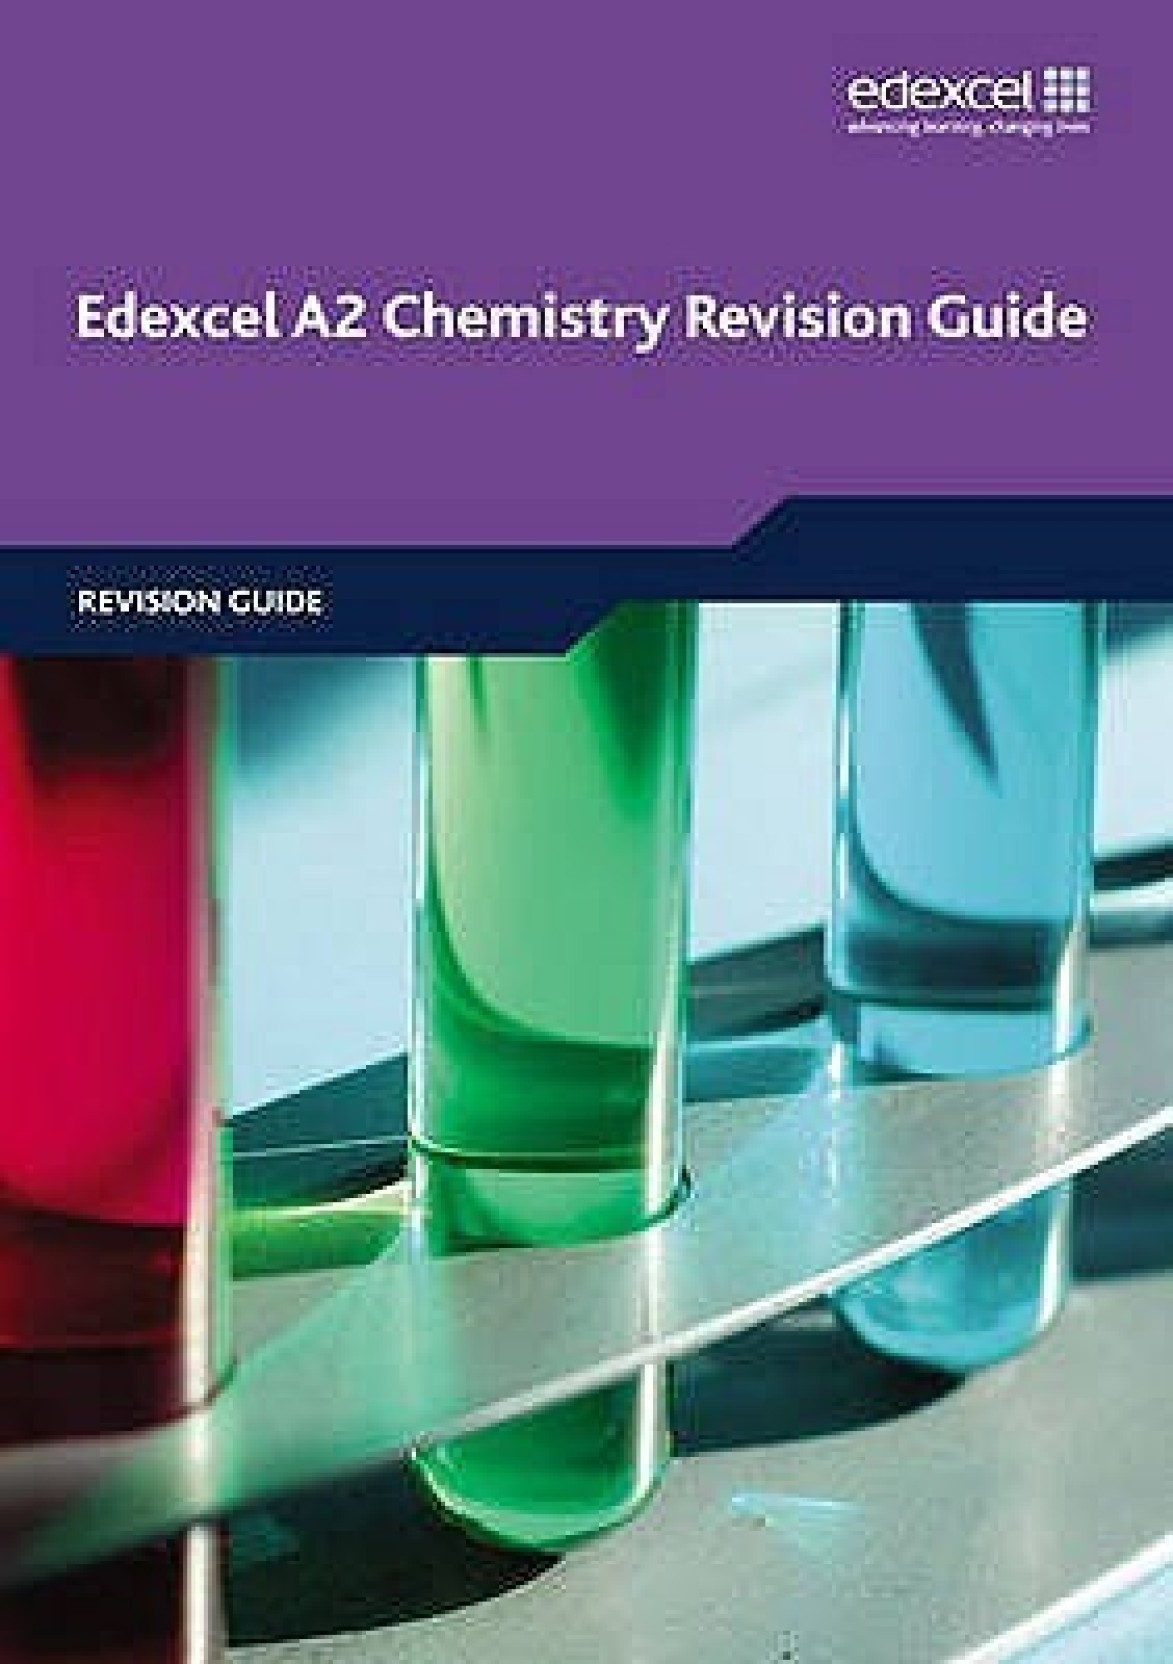 Edexcel A2 Chemistry Revision Guide. Share